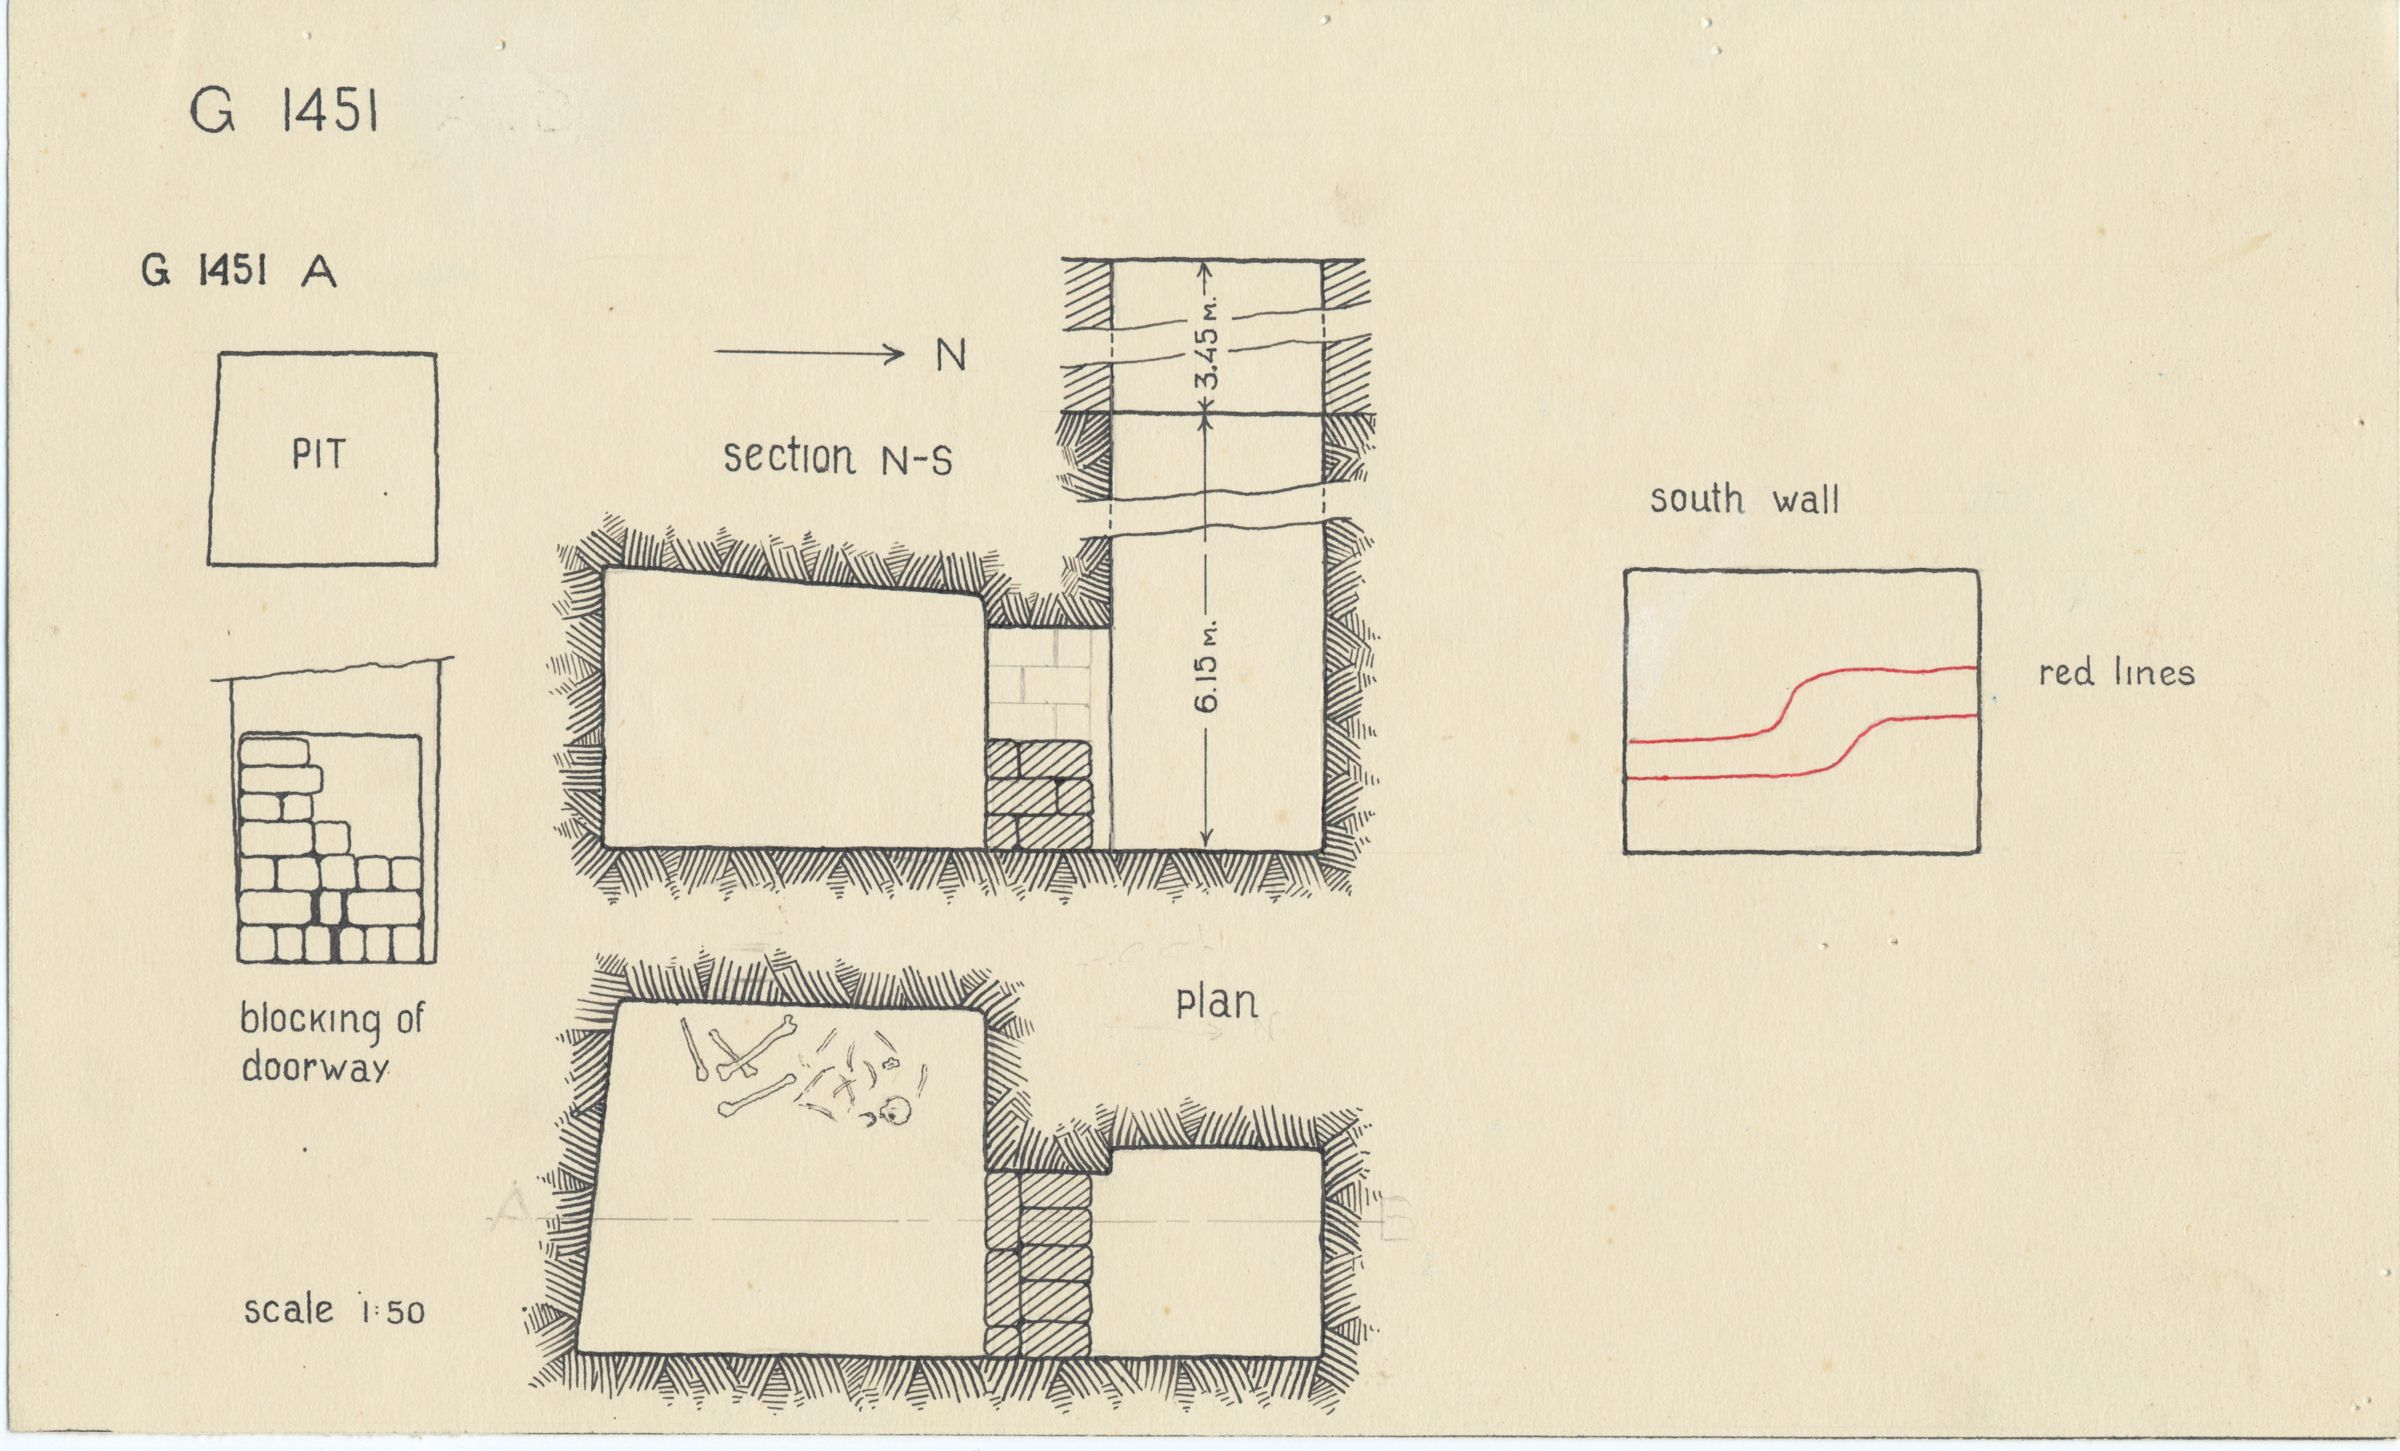 Maps and plans: G 1451, Shaft A